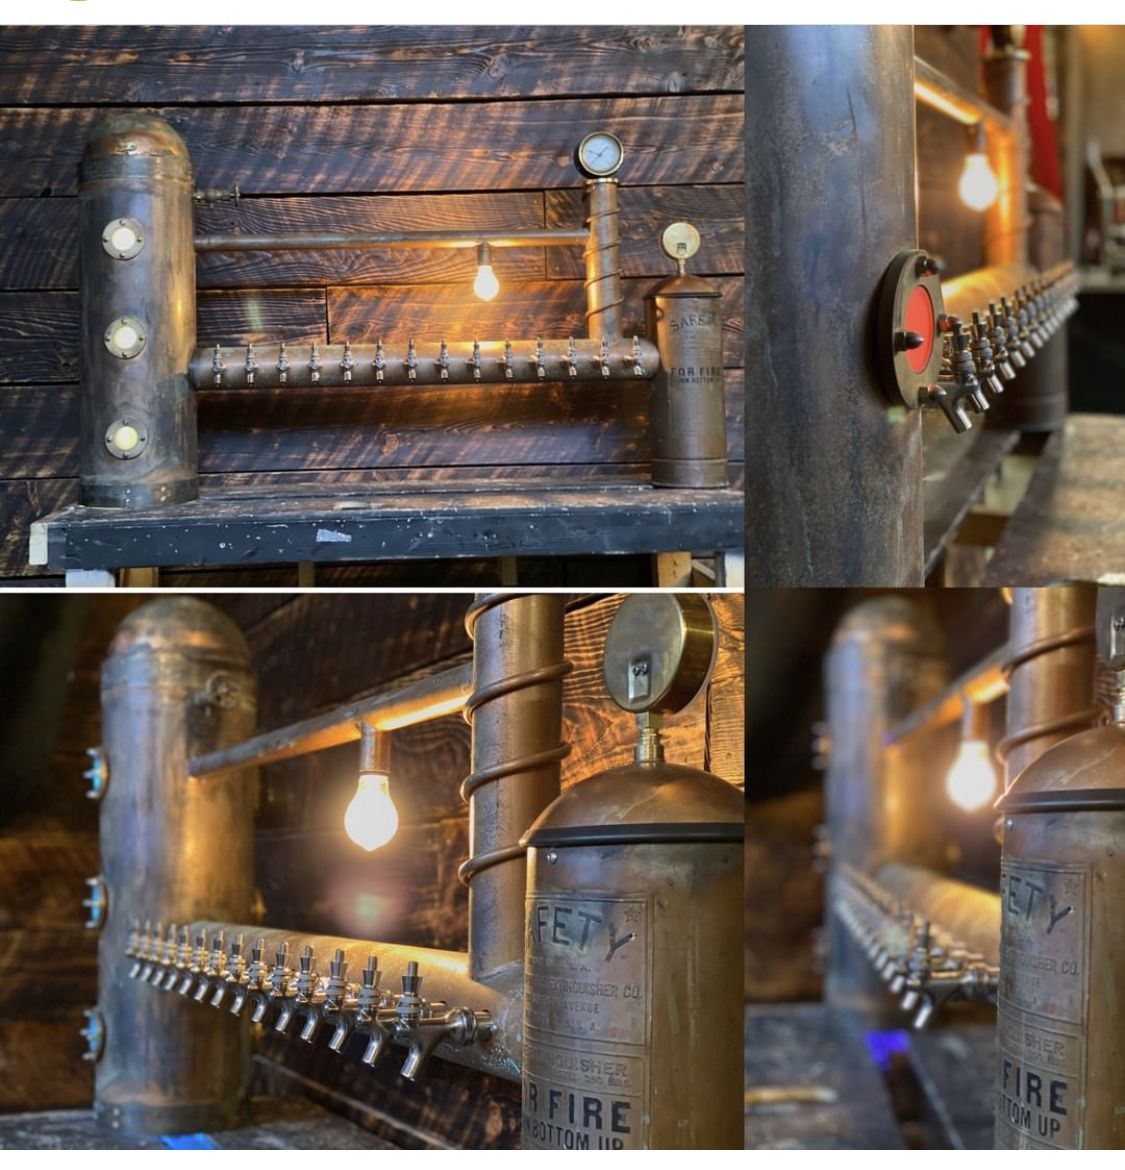 Custom Aged Copper Draft Beer Tap Tower In 2020 Beer Custom Beer Tower Draft Beer Tower